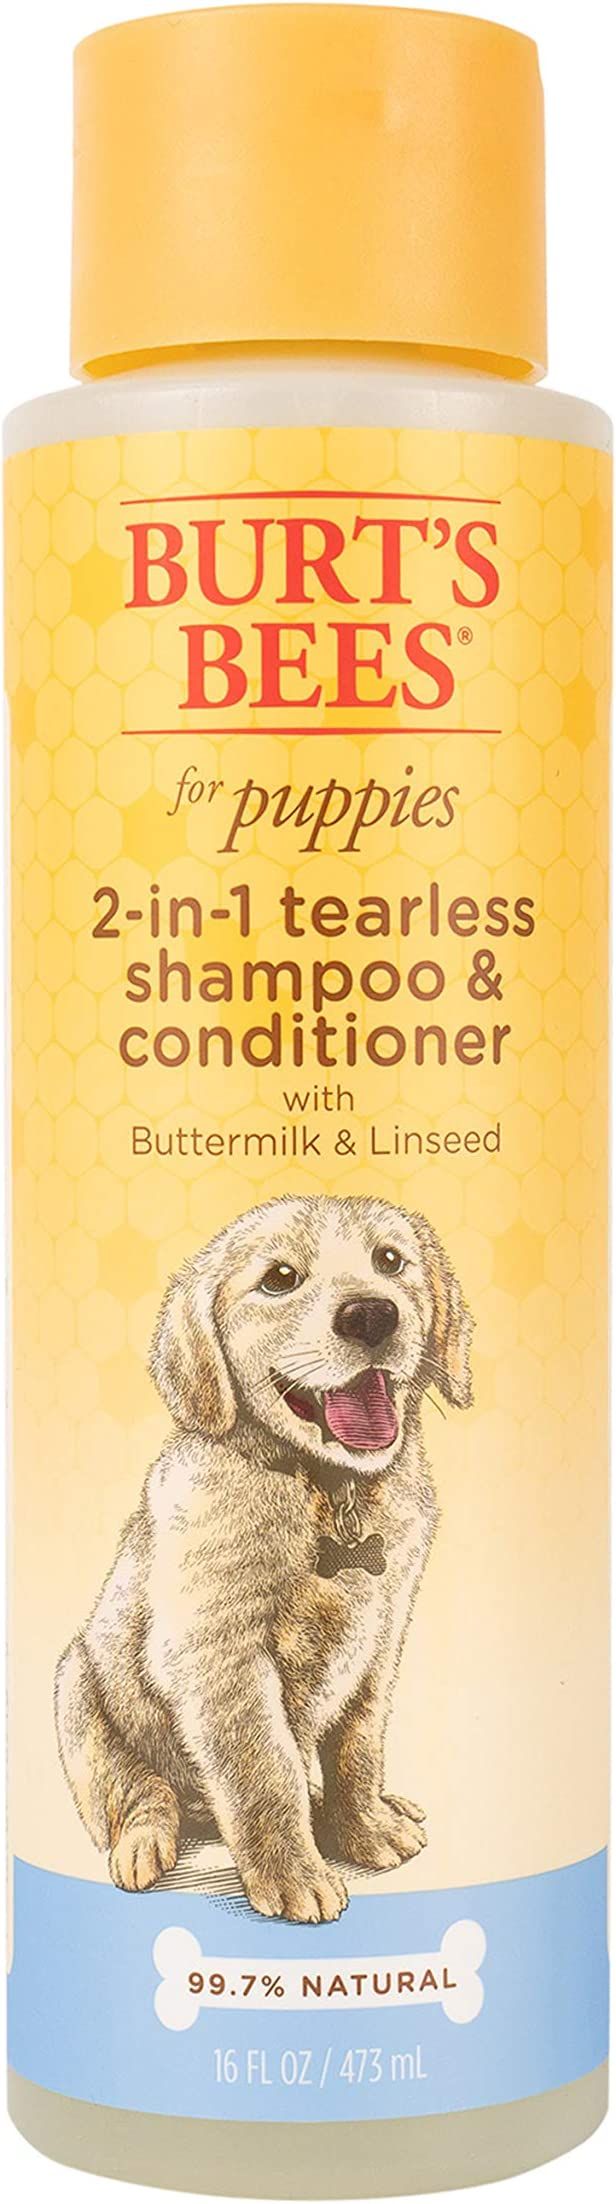 Burt's Bees for Puppies Tearless 2 in 1 Shampoo and Conditioner For Dogs